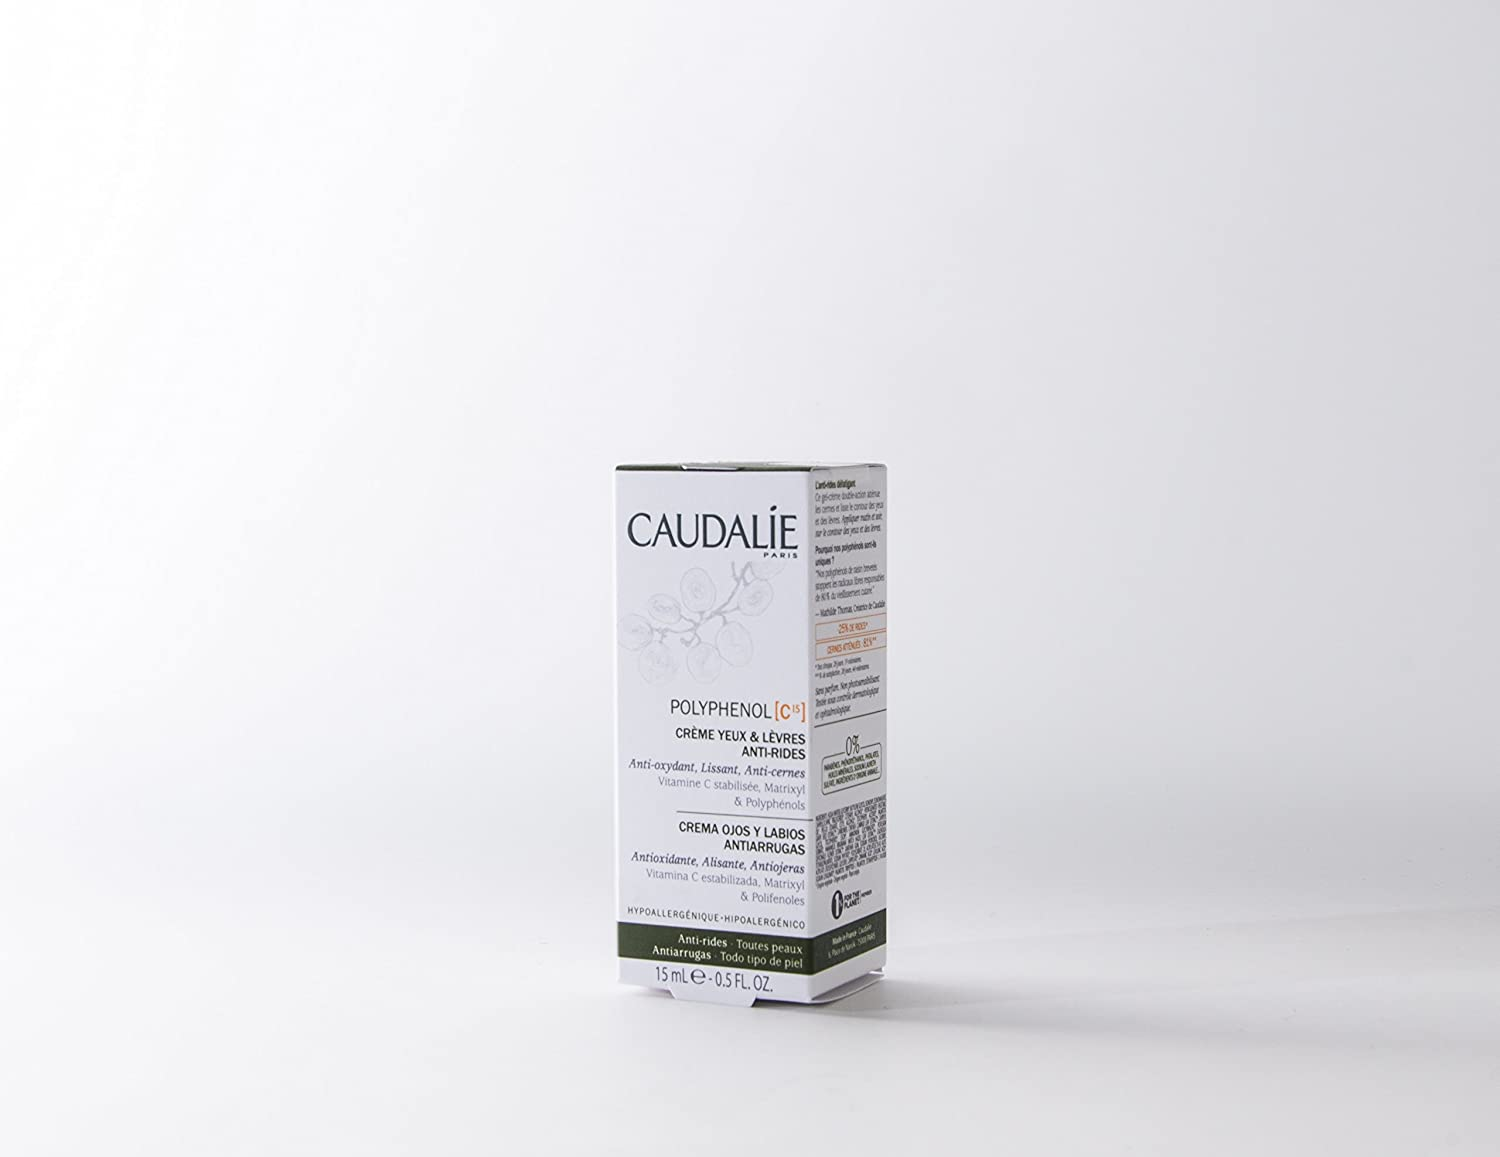 Amazon.com : Caudalie Polyphenol C15 Anti-wrinkle Eye And Lip Cream 15ml : Beauty